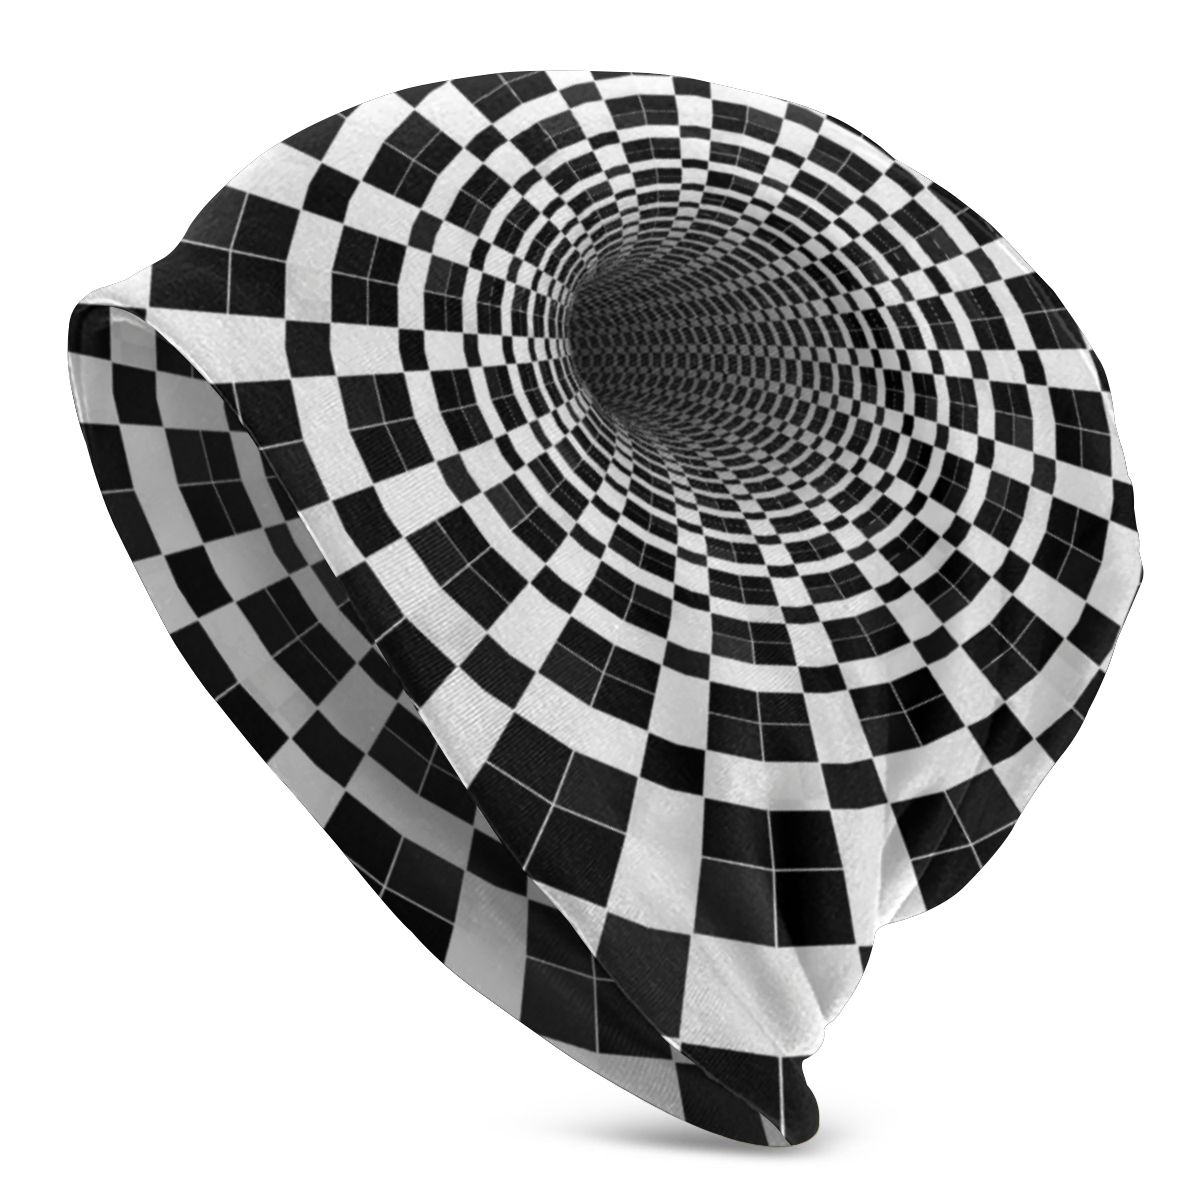 Protective Spiral Checker Black White Checkerboard Filter Mouth Face Towel Air Anti Dust Washable Head Scarf